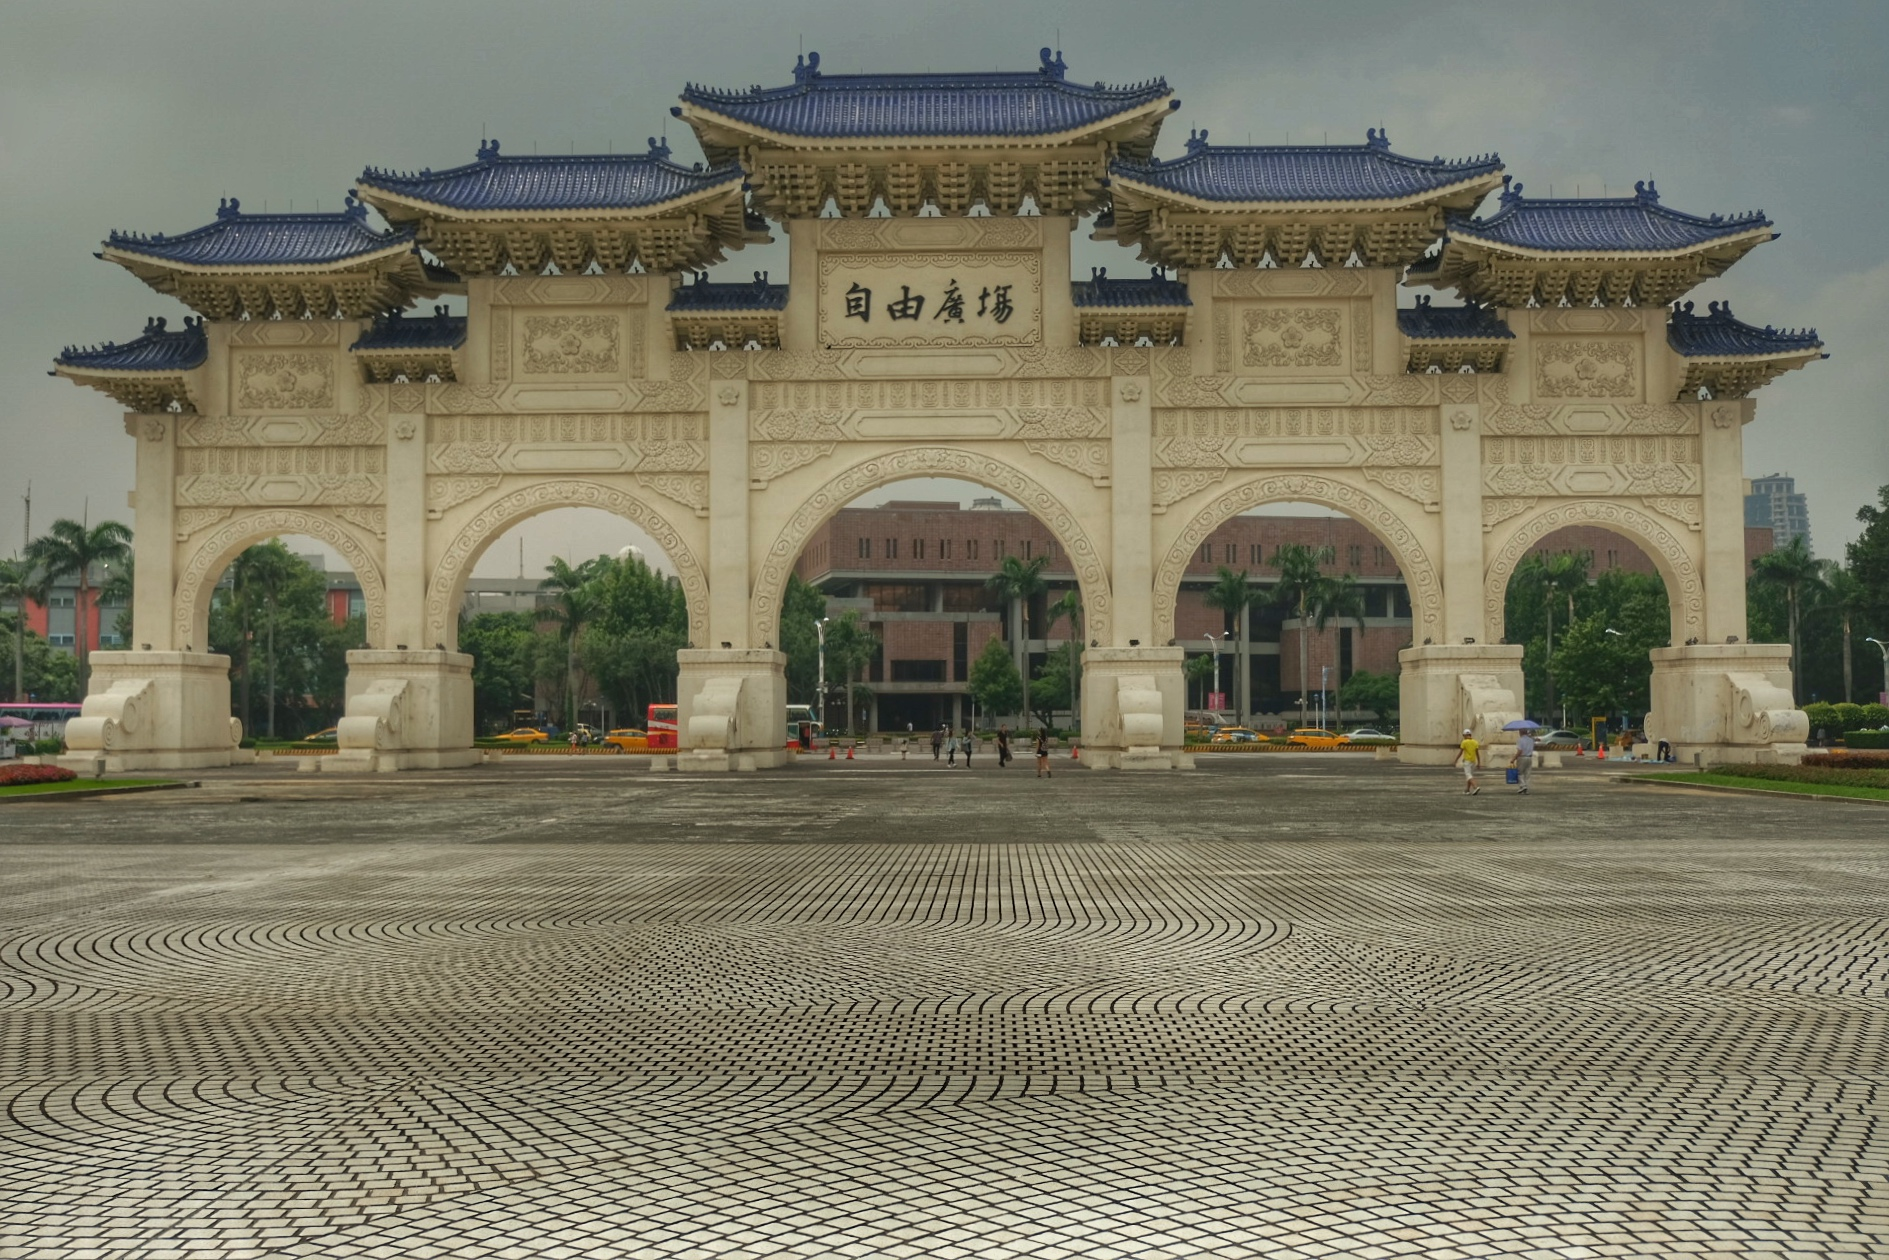 Gates of Great Centrality and Perfect Uprightness leading to Chang Kai Shek Memorial.